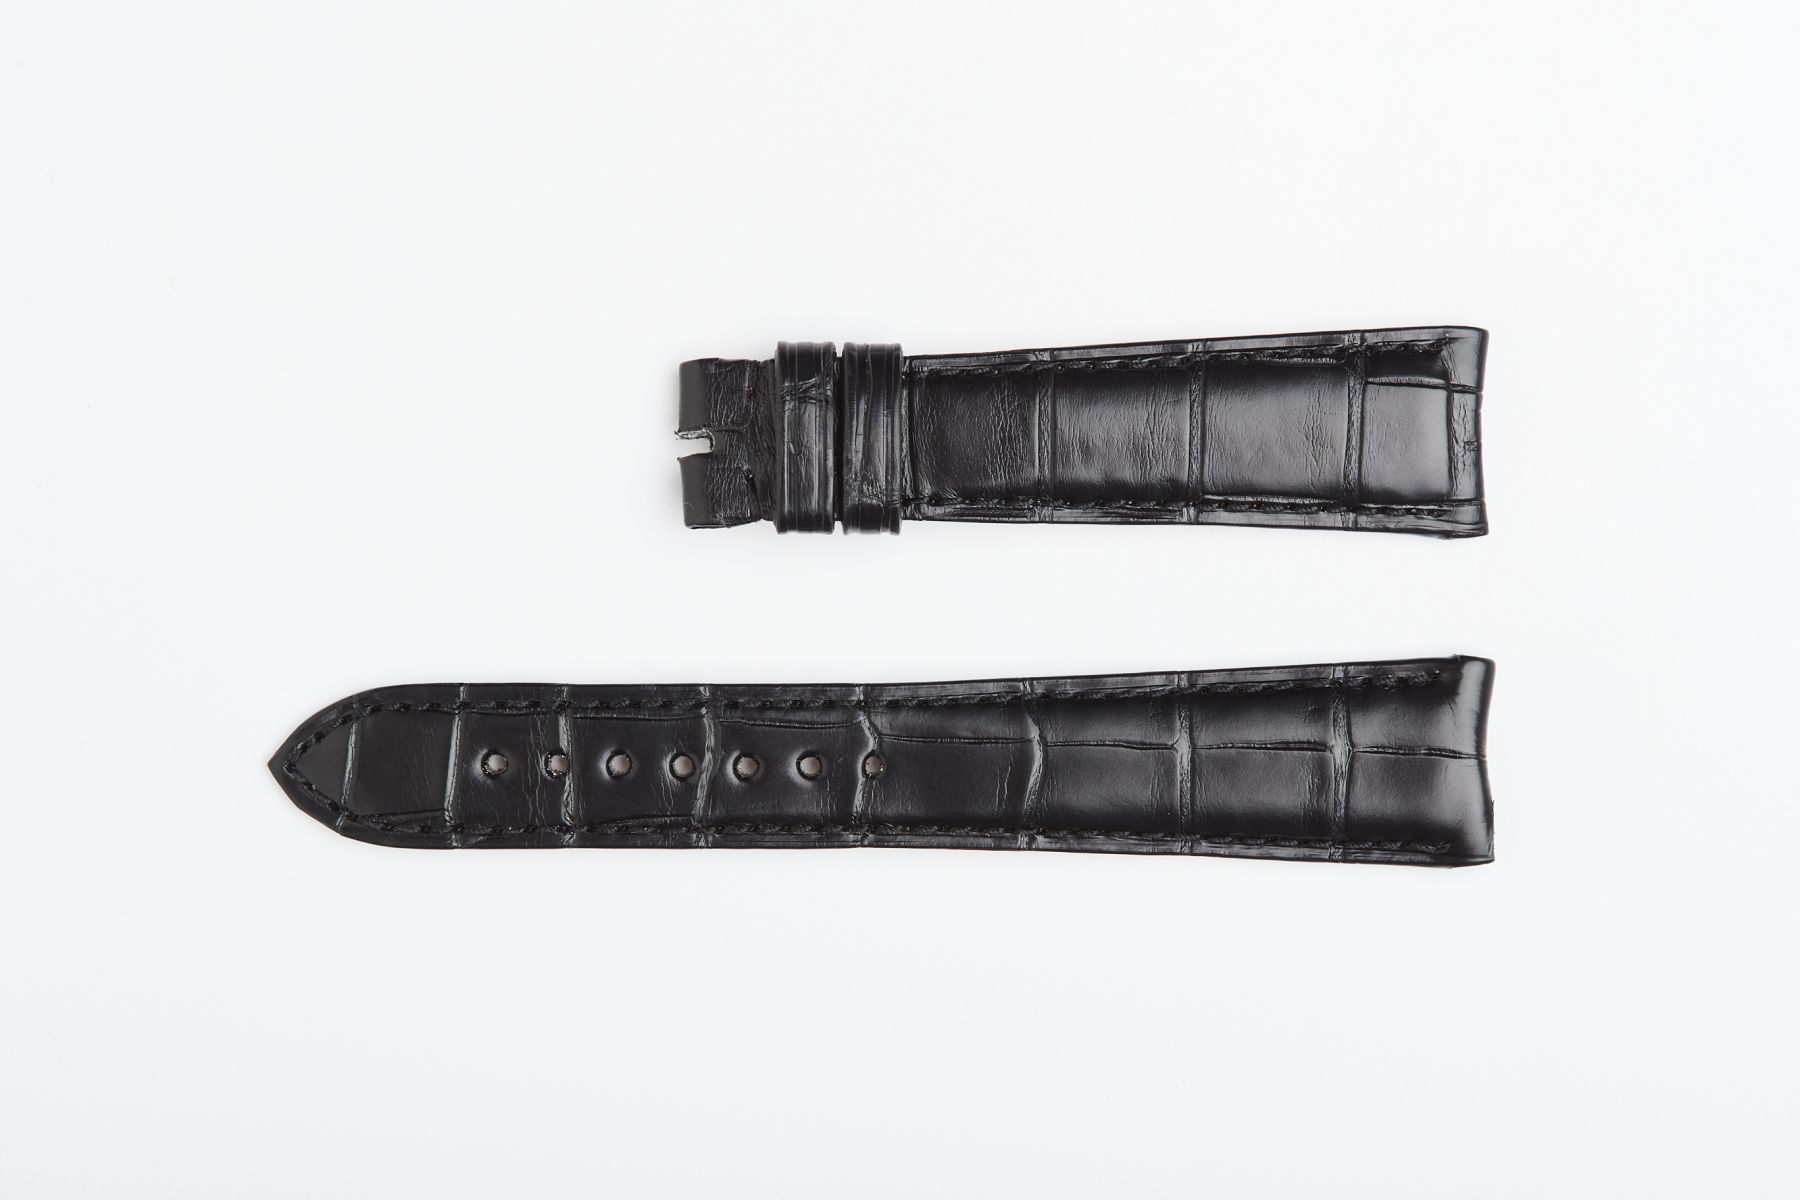 Rolex Cellini Dual / Time / Date Custom made strap in Black Matte Alligator leather. Curved lugs